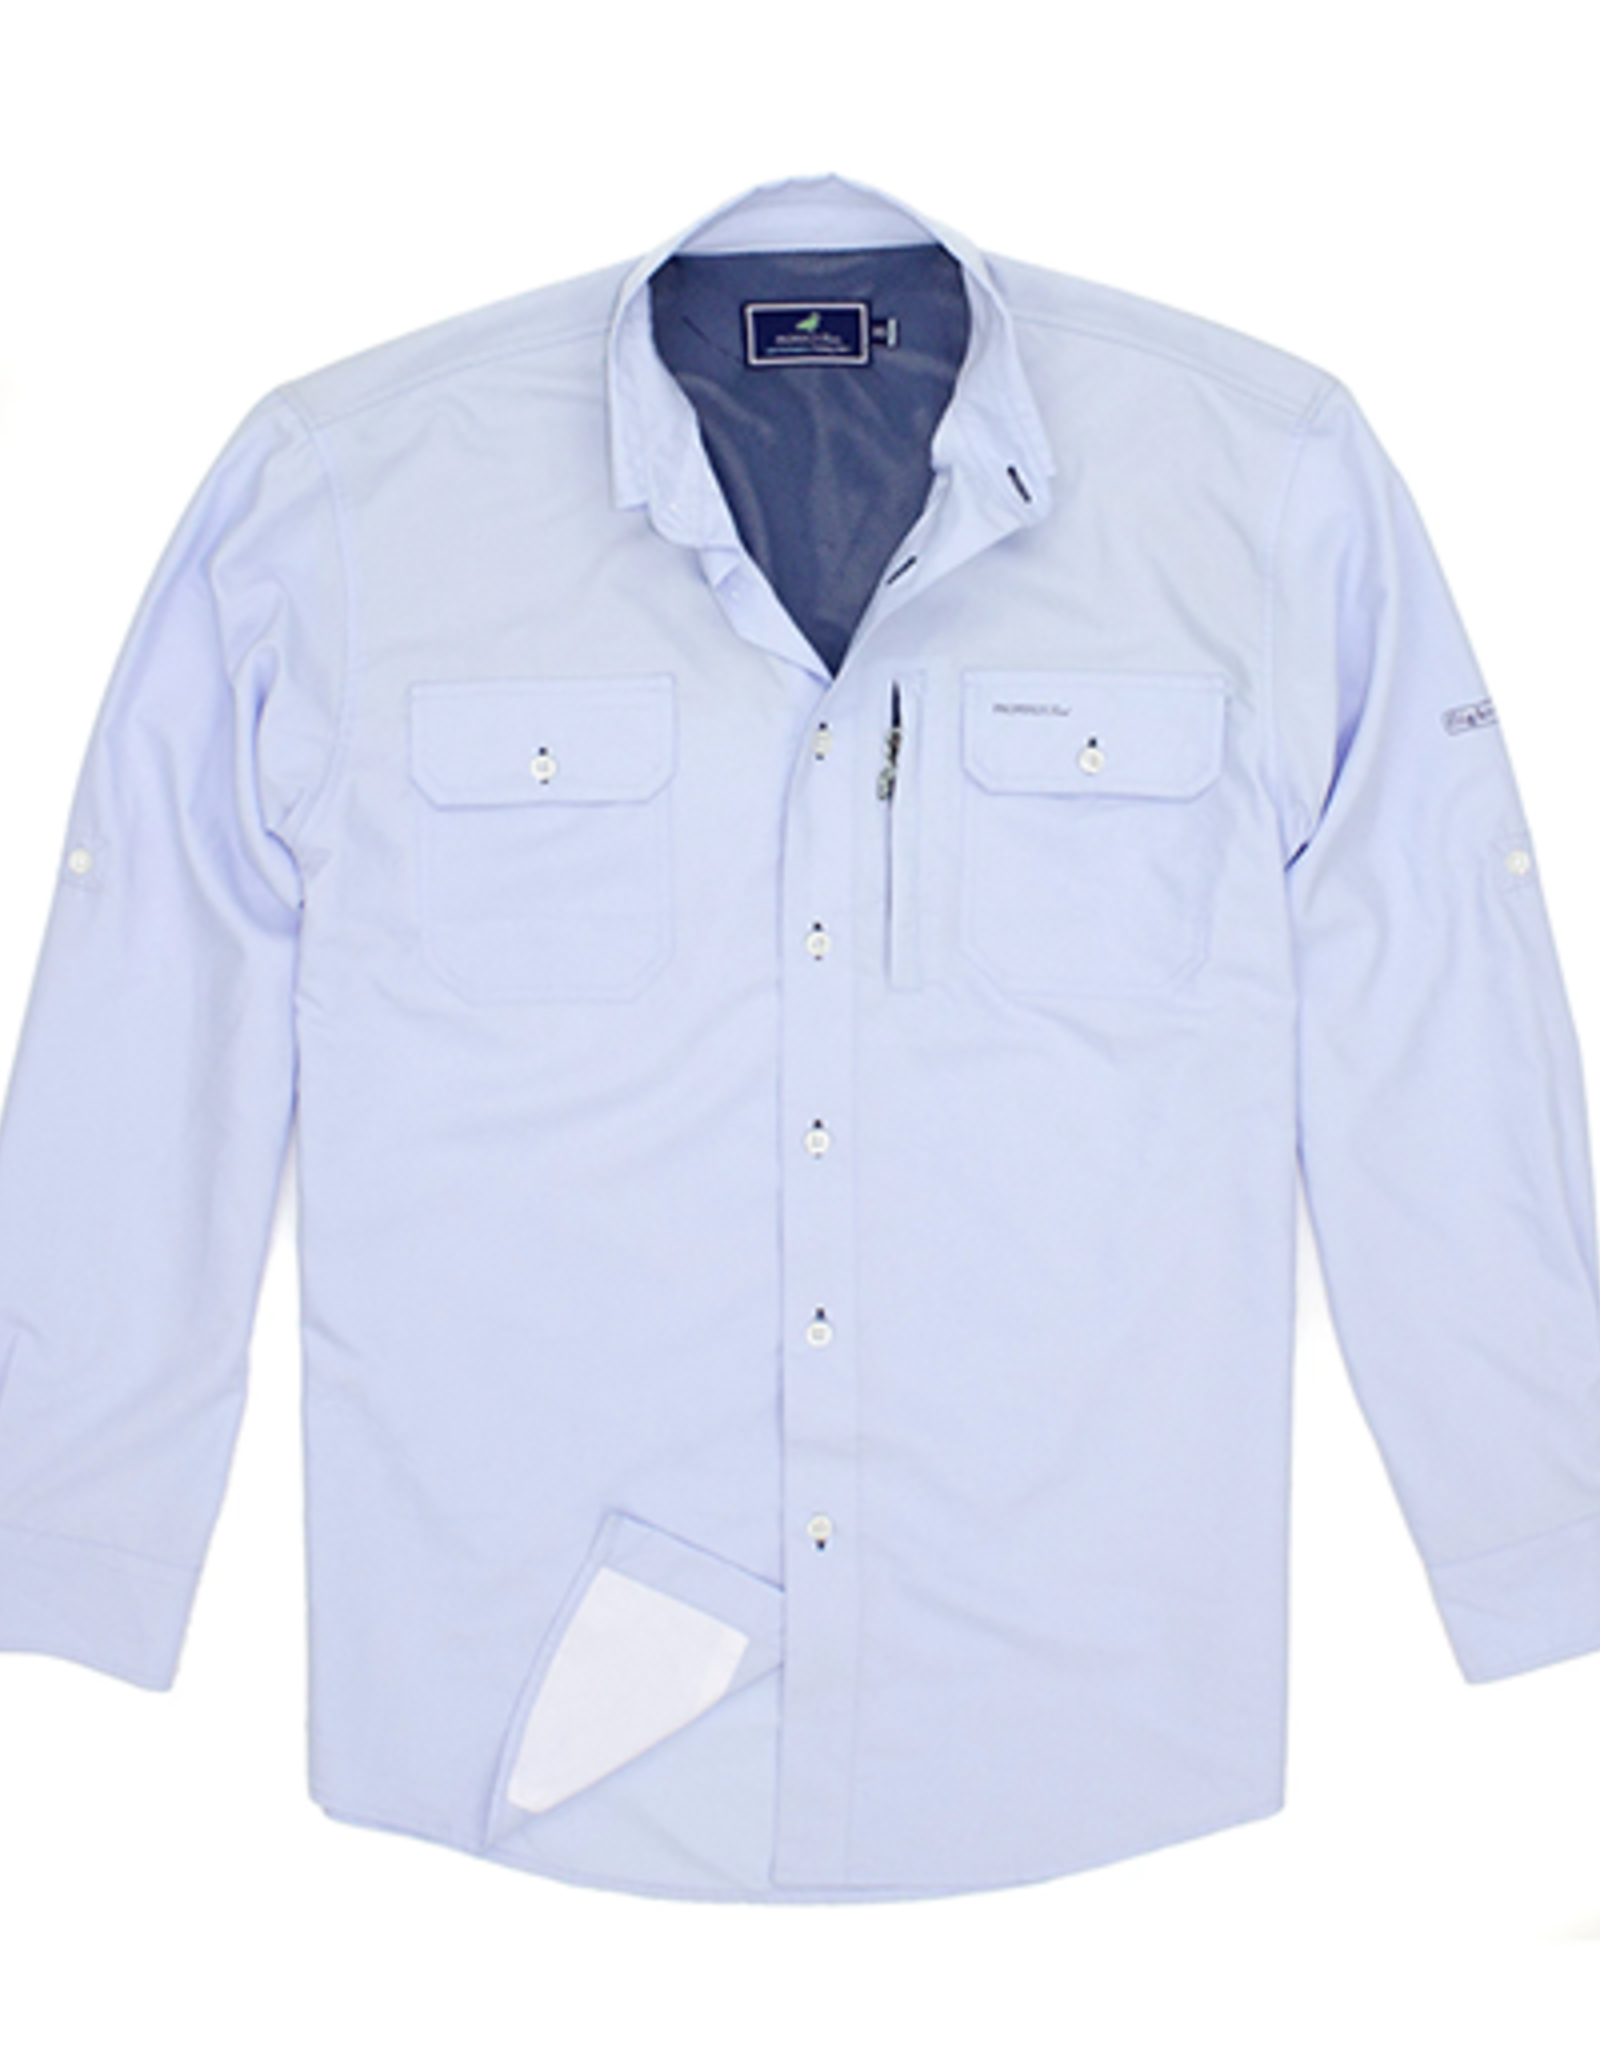 Properly Tied PT Offshore Fishing Shirt